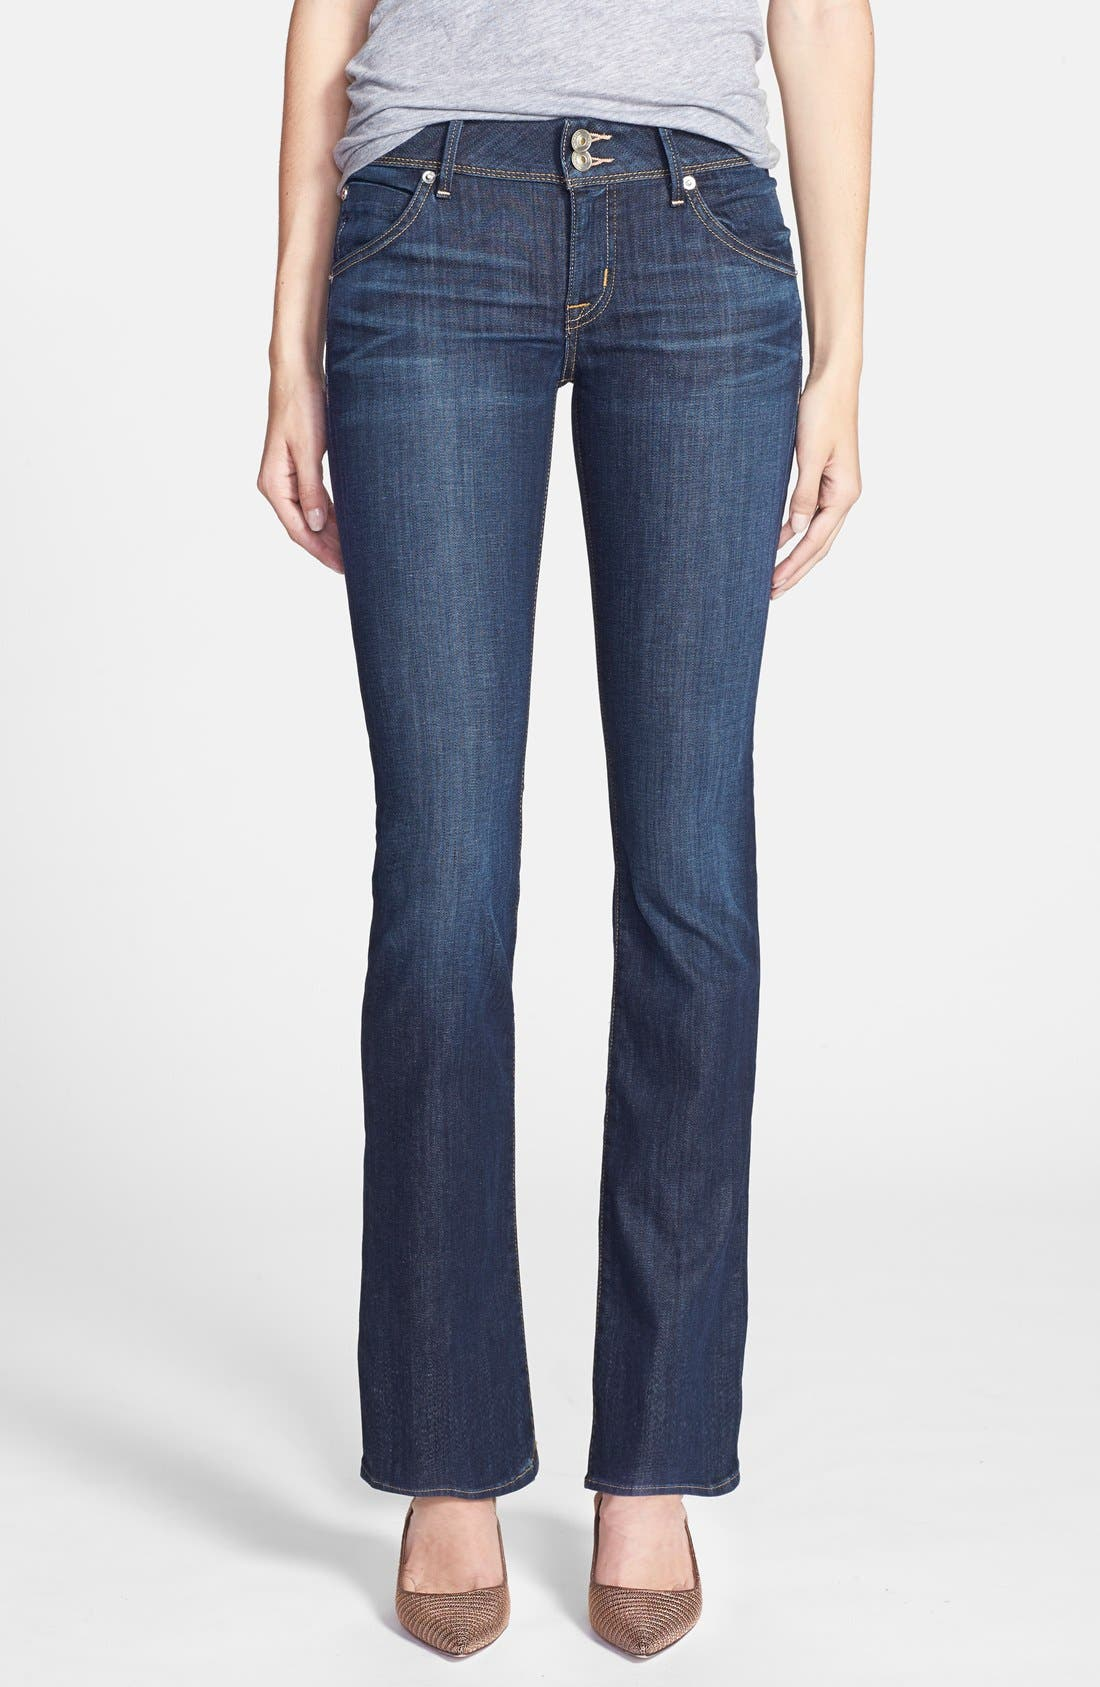 Hudson Jeans 'Beth' Baby Bootcut Jeans (Stella) (Petite) | Nordstrom